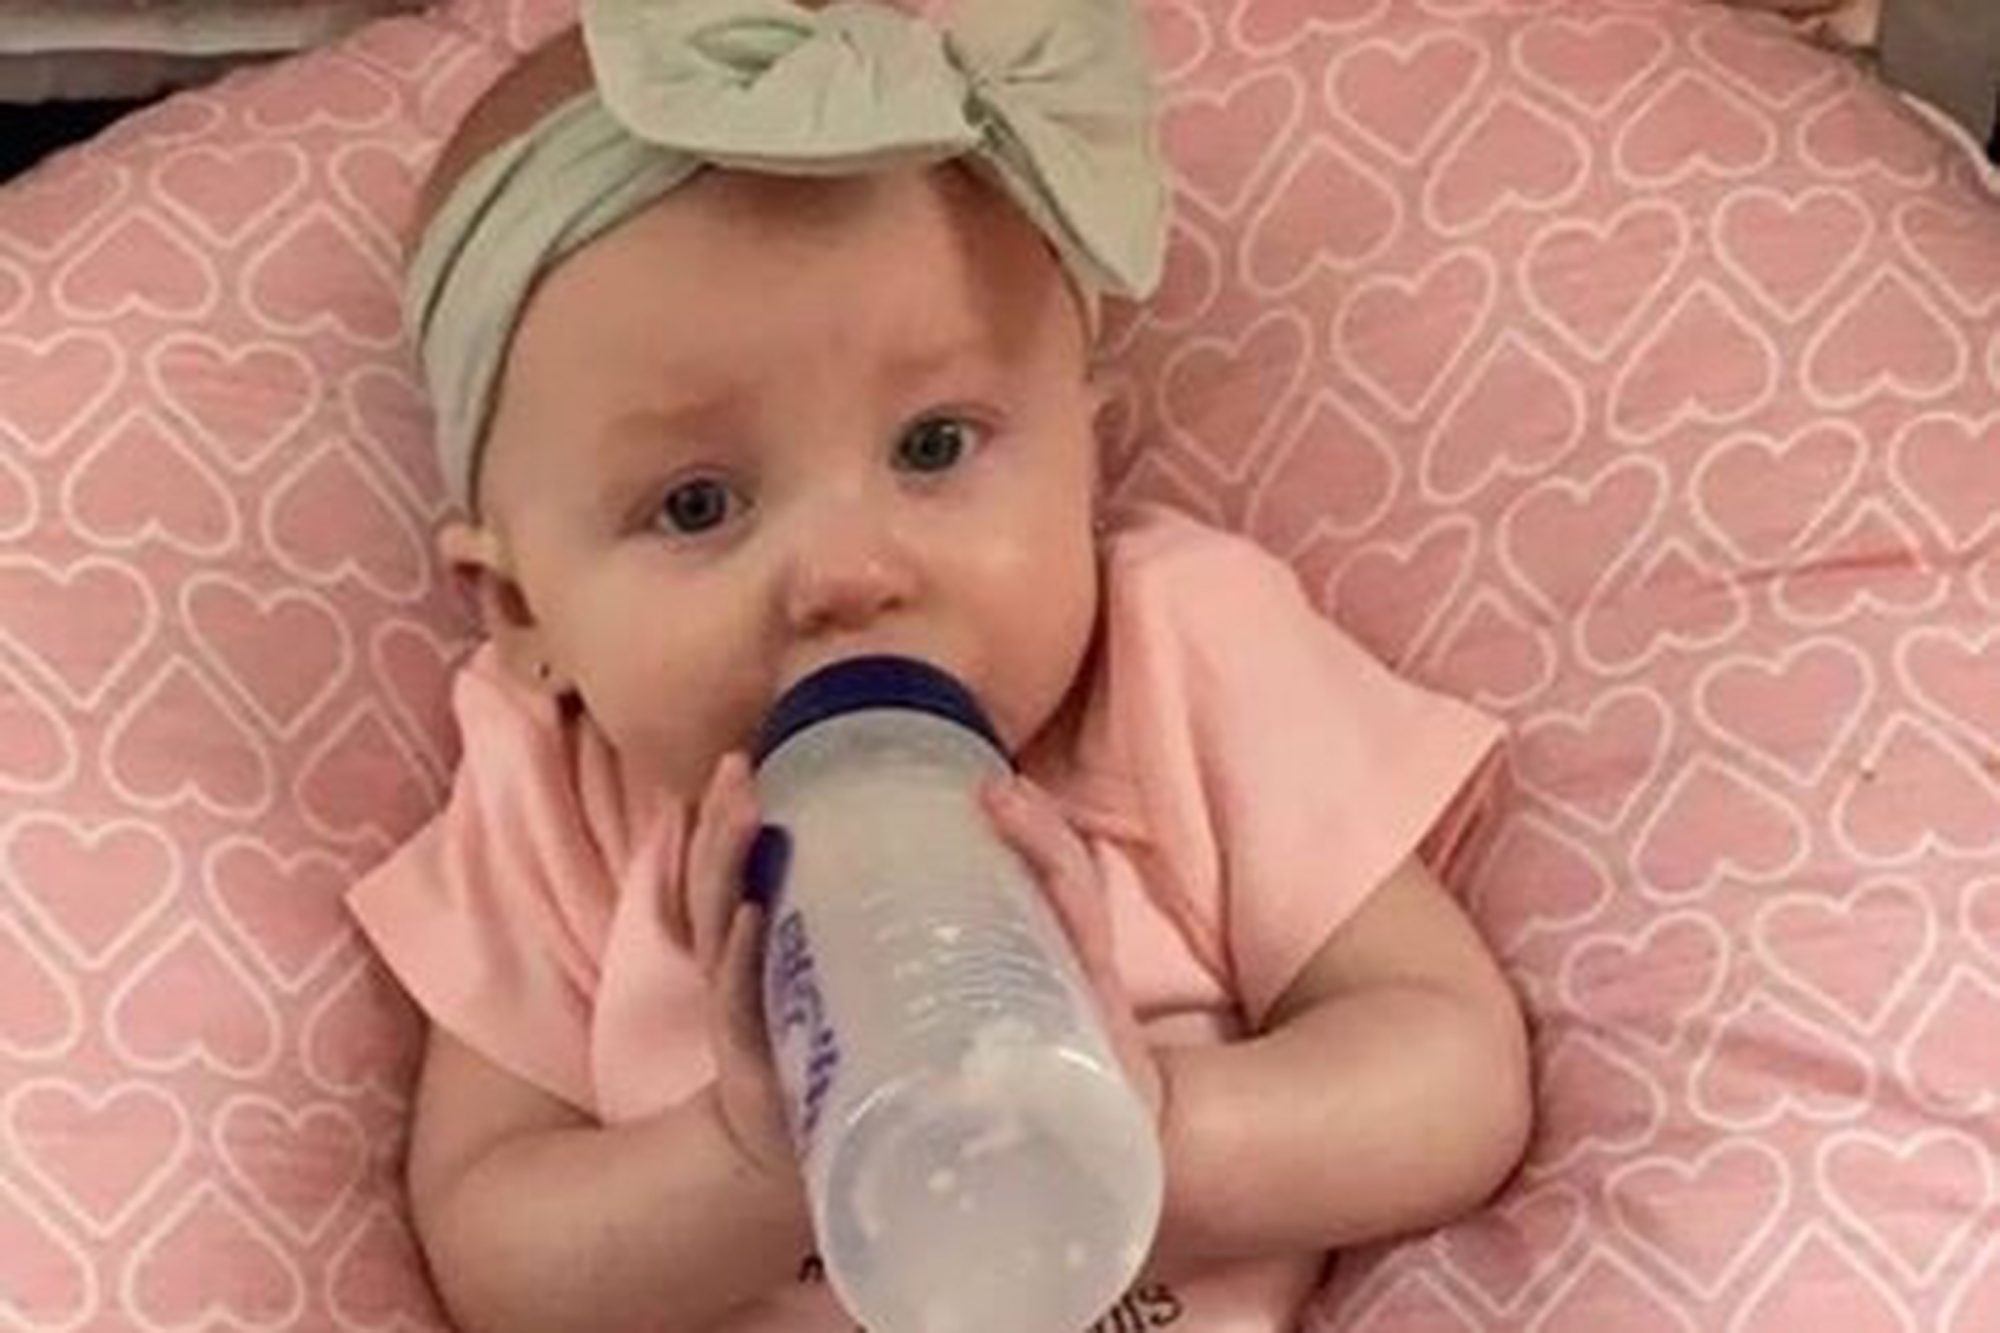 Day Care Provider Allegedly Killed 'Happy, Healthy' Baby Girl by Giving Her Antihistamine